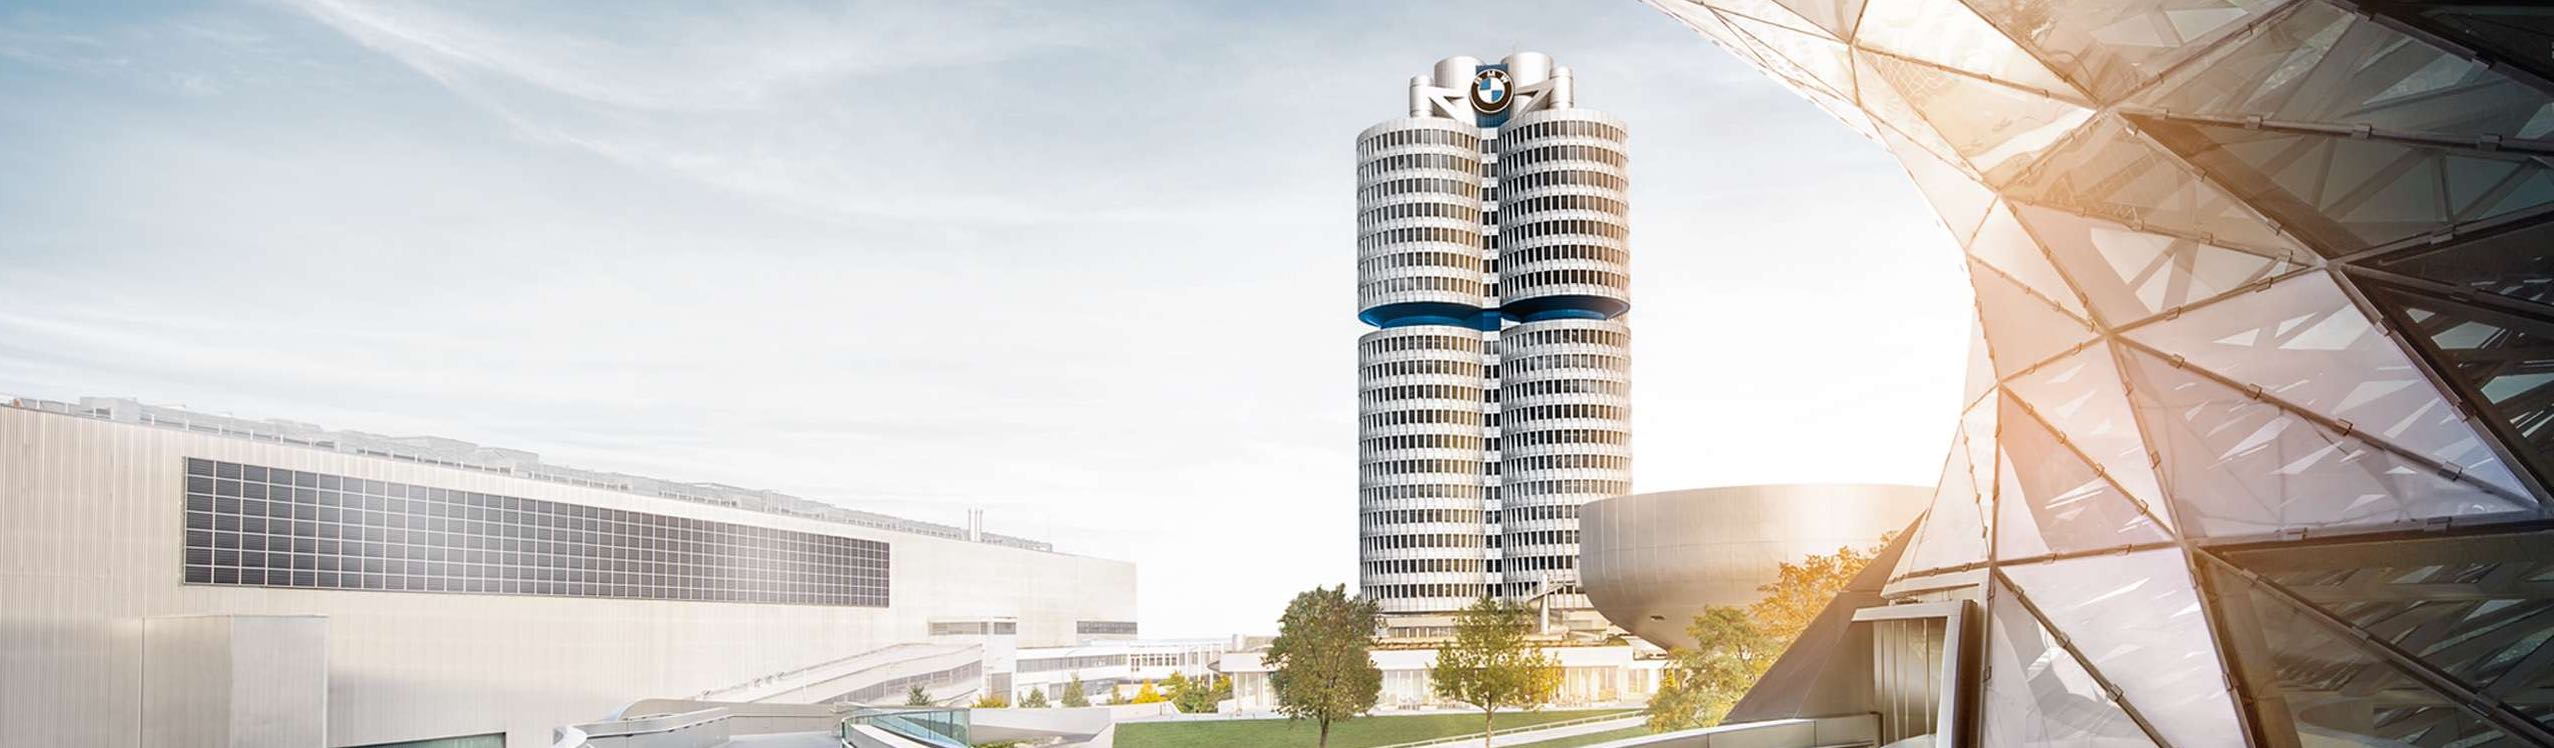 Panoptikum standort bmw group